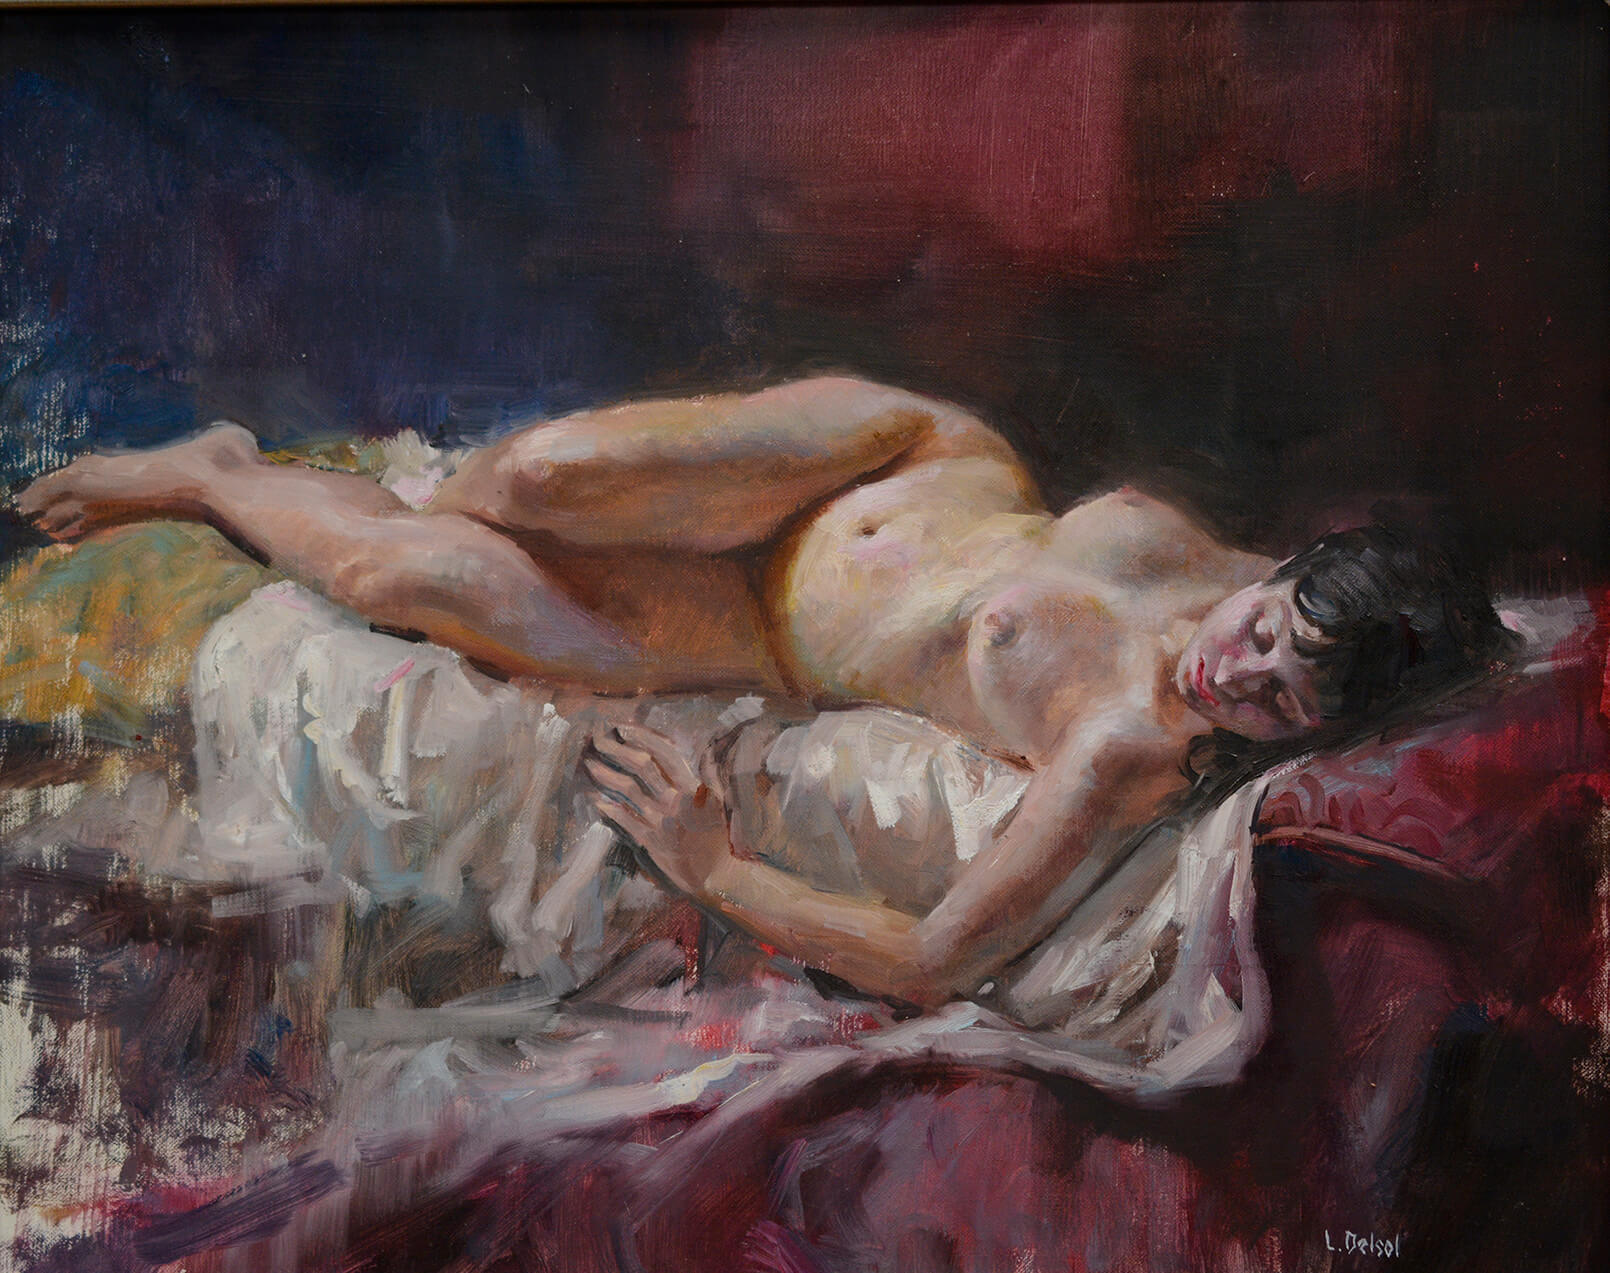 Realistic figurative oil painting of a nude reclining woman in a foreshortened pose